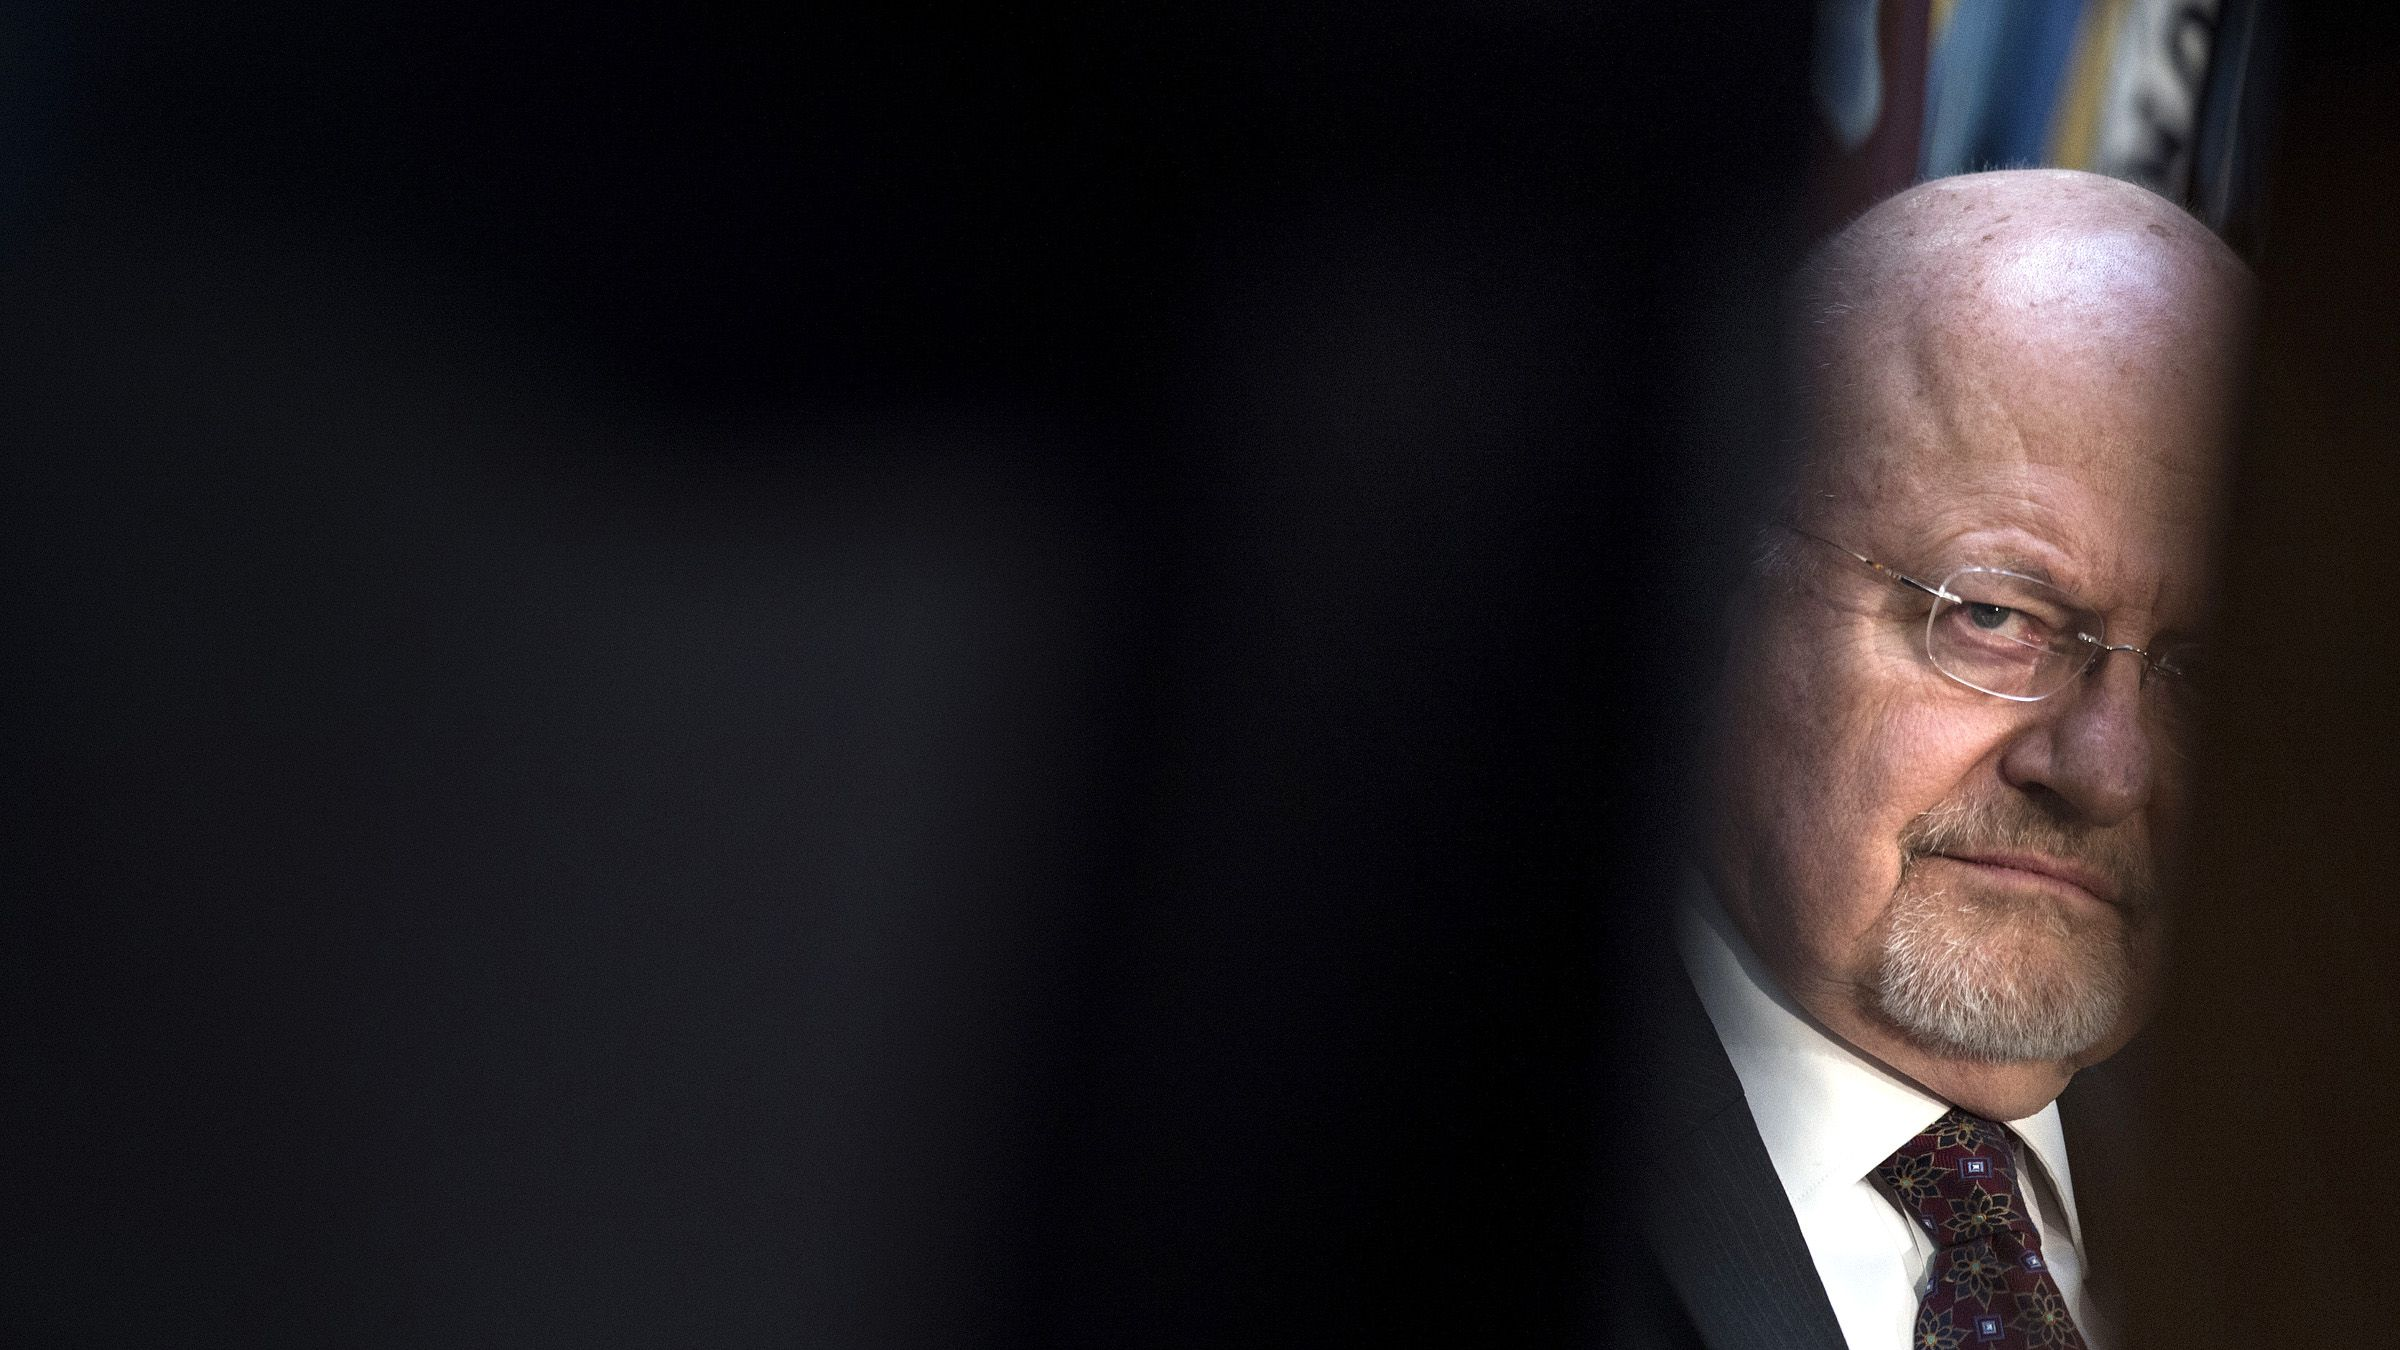 Director of National Intelligence James R. Clapper listens during a retirement ceremony at the National Security Agency in Fort Meade, Maryland March 28, 2014.